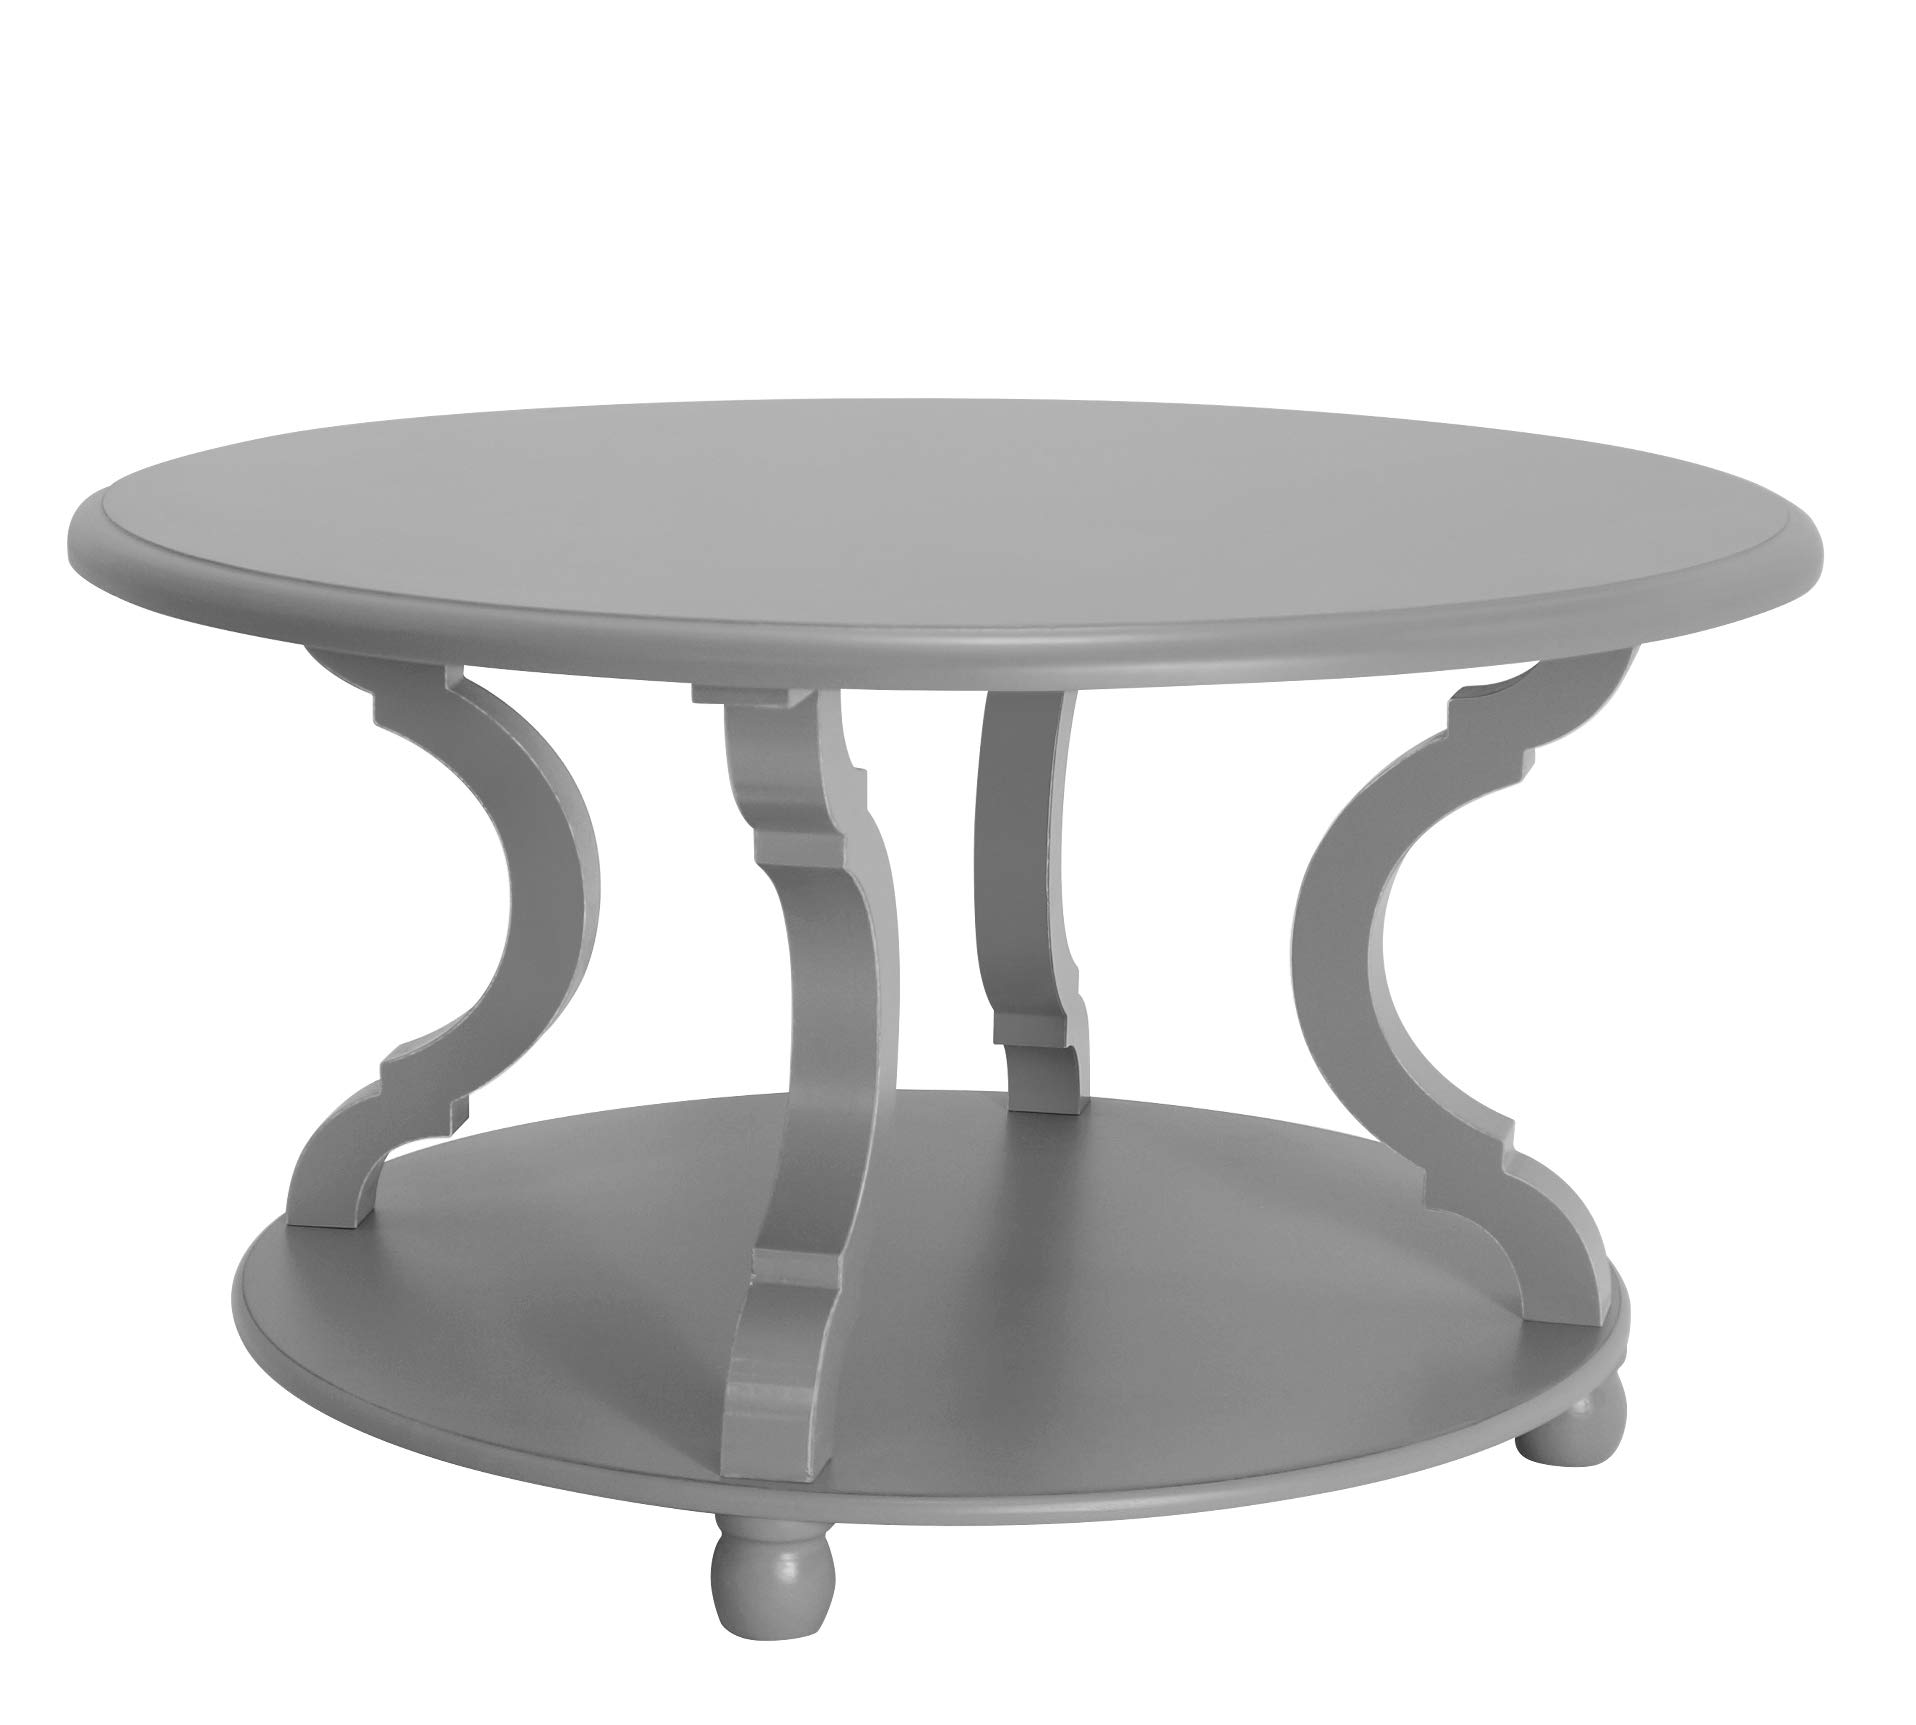 FINECASA Wood Coffee Table,Round Coffee Table Living Room, Round Cocktail Table with Storage, Sofa Table with Shelf, 31.0x18.3 Inches, Accent Tables with Carved Legs for Living Room, Gray